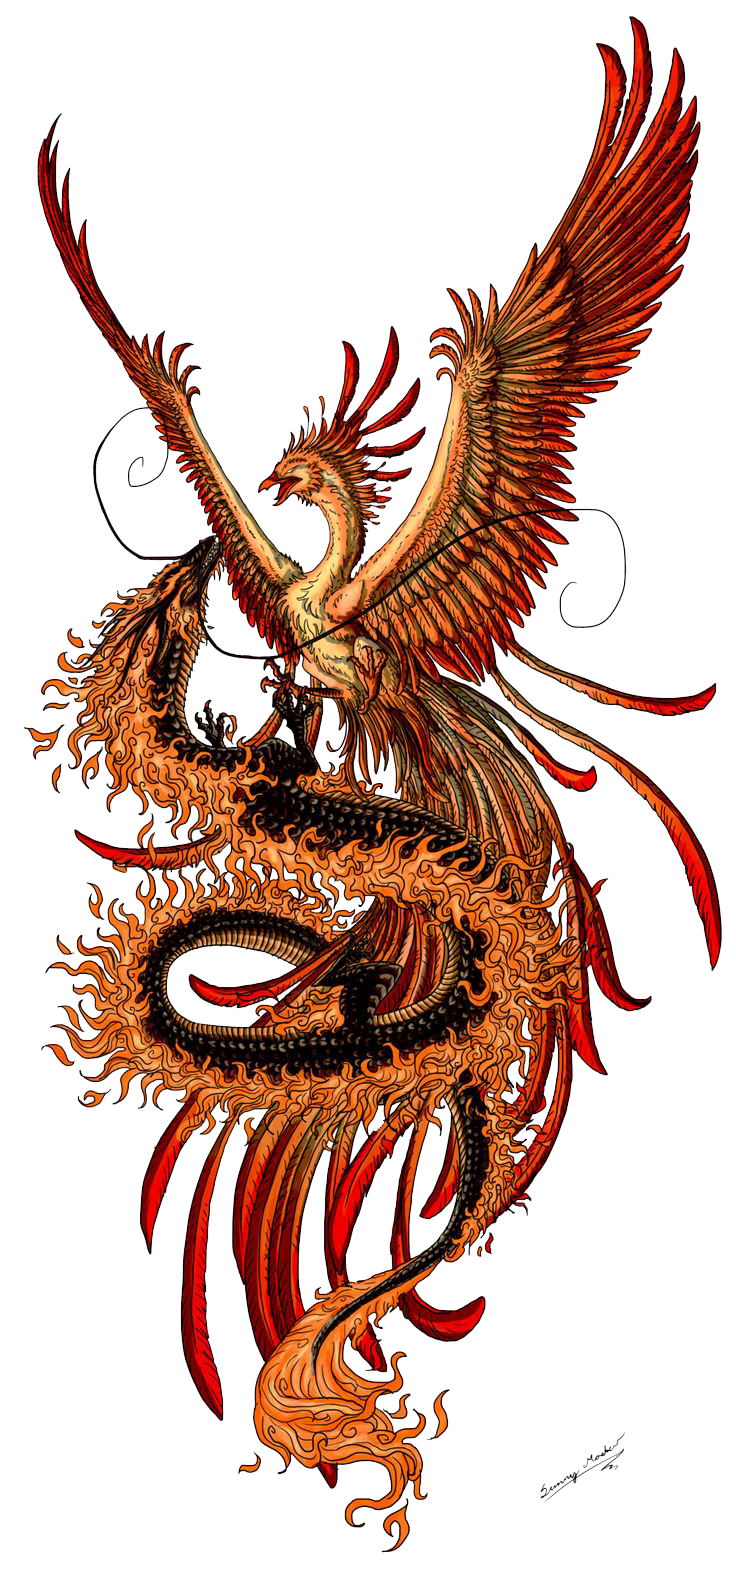 Tattoo Phoenix Chinese Tattoos Dragon Fenghuang Images PNG Image